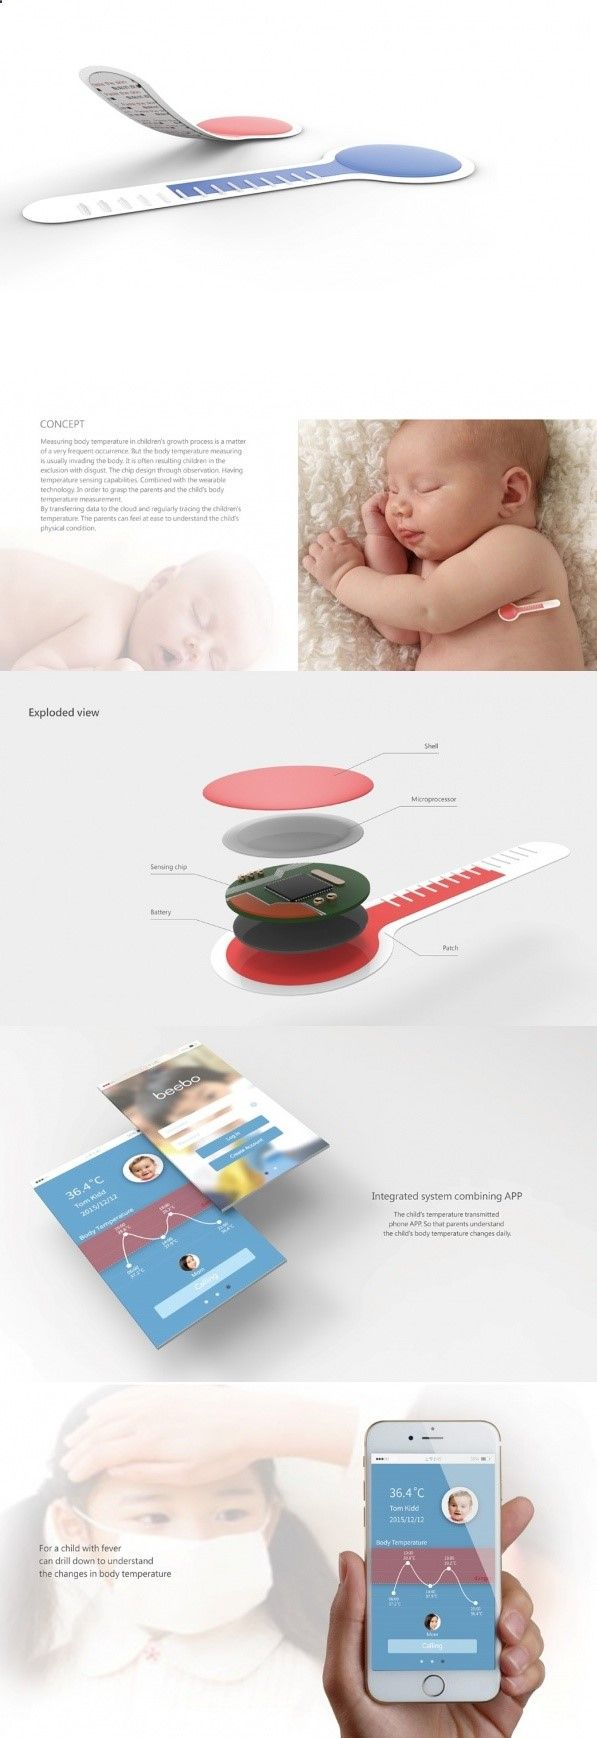 Sweet Sensing is a thermometer that means business. Not only is it a visual thermometer, it also syncs with the internet to update you with the latest temperature readings. #Technology #YankoDesign #Product #Design